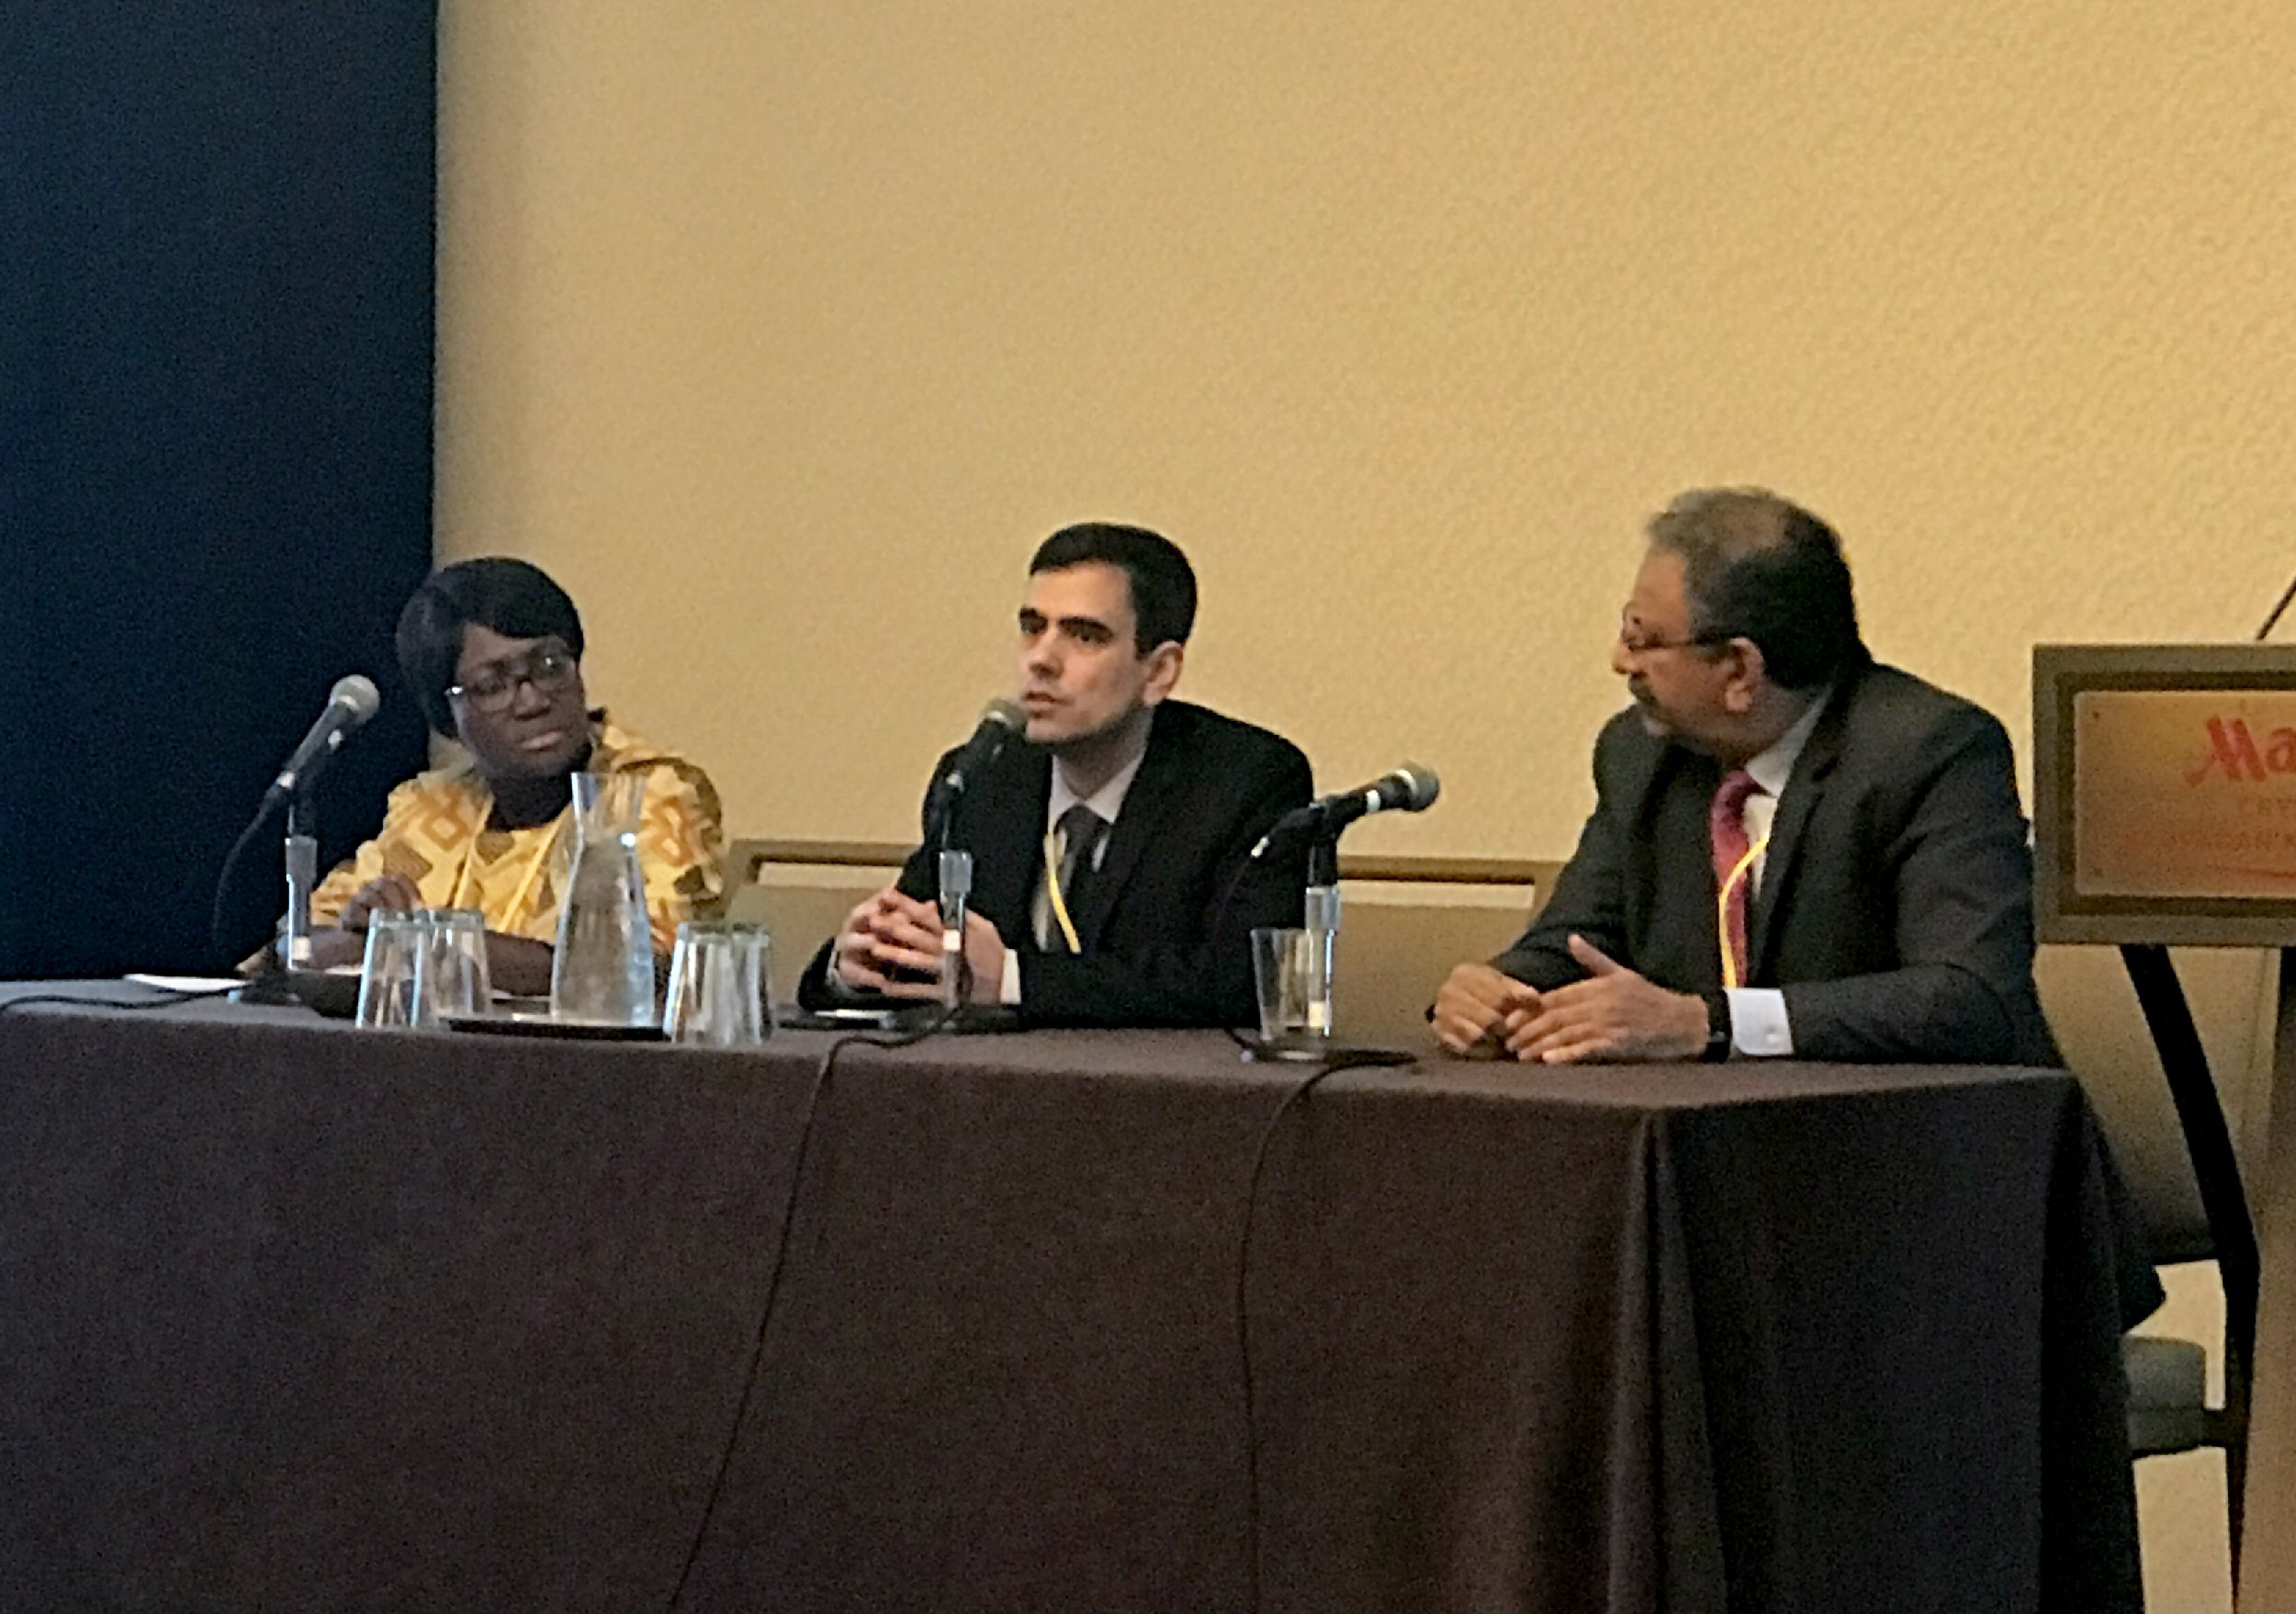 Lorna Renner, Luiz Teixeira and Arun Singh lead discussions on retinoblastoma care in developing countries.